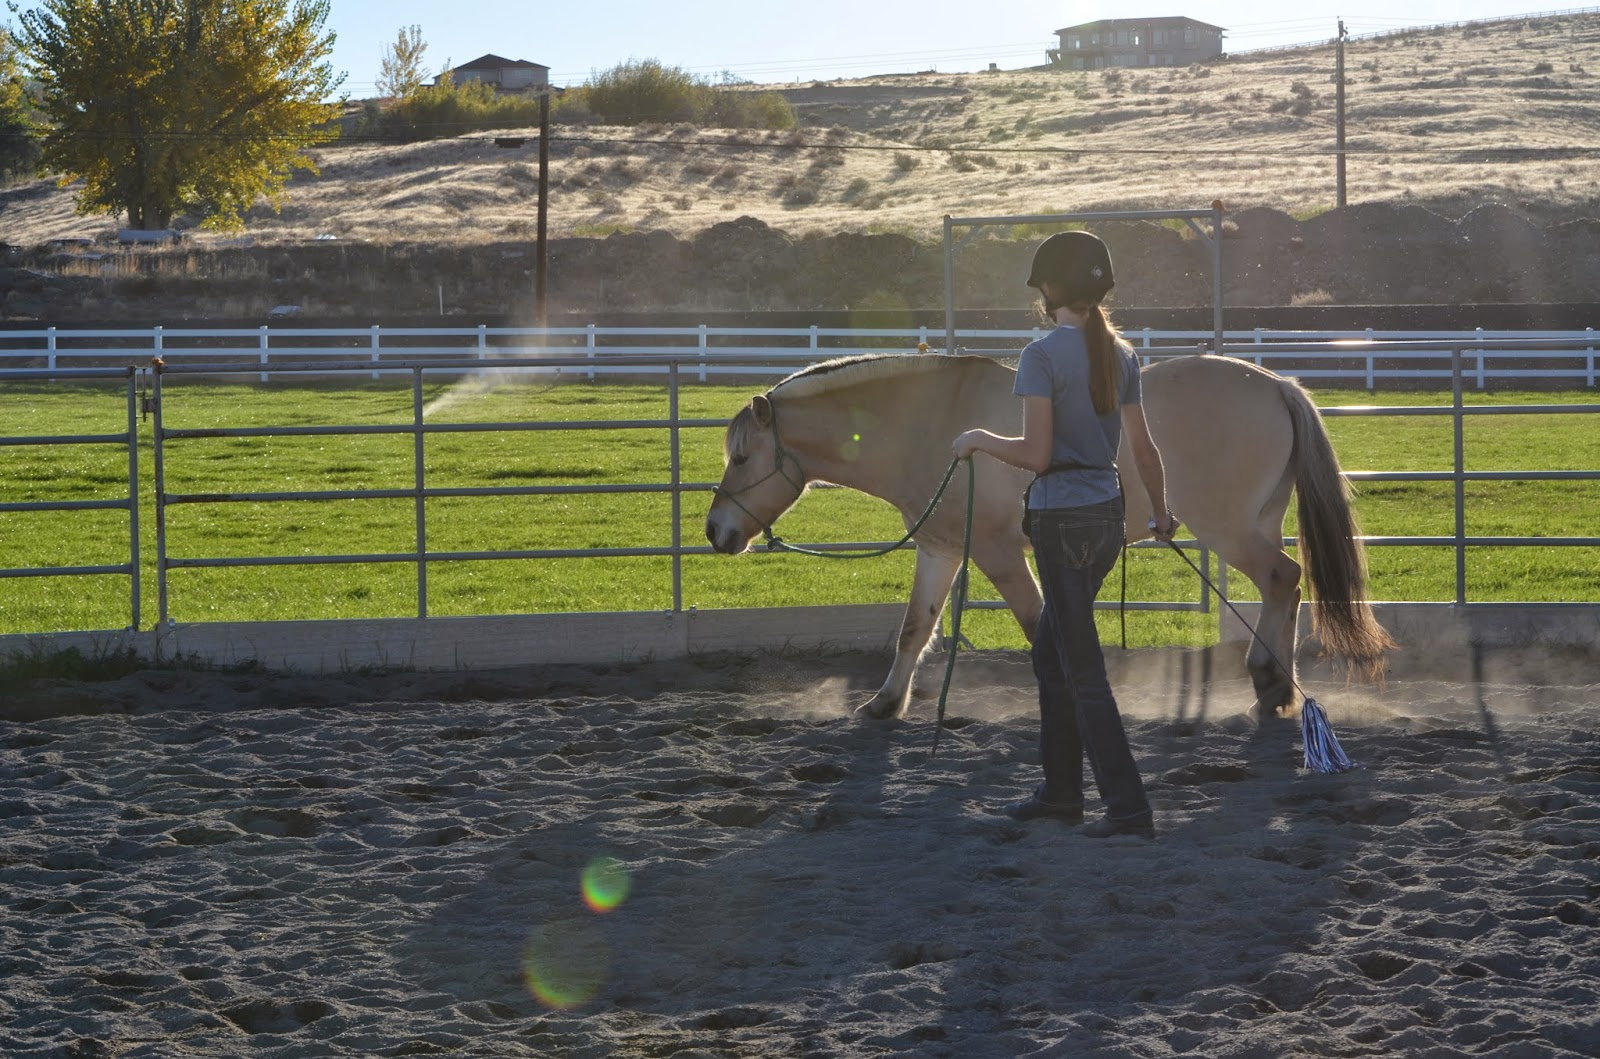 Lunging your horse